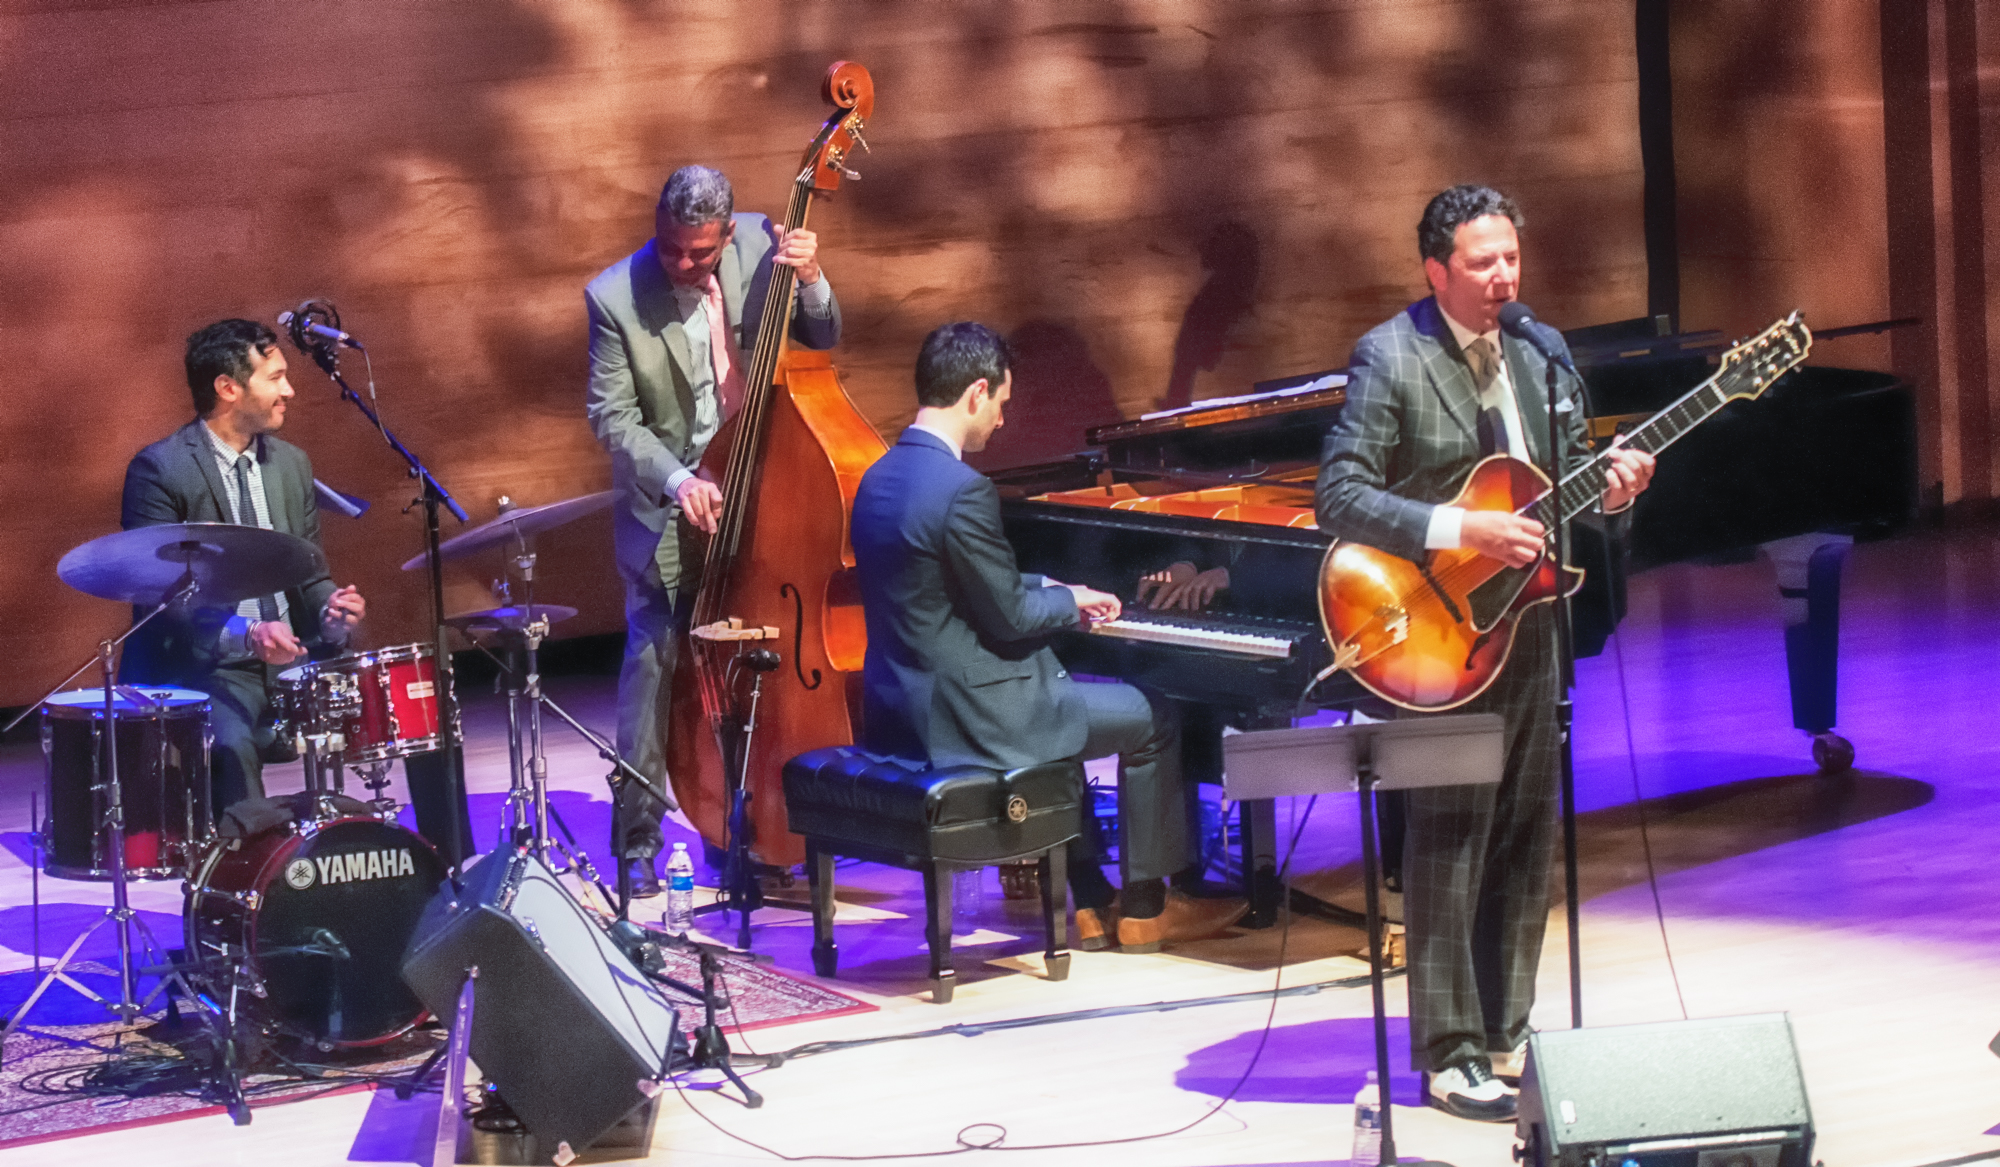 Kevin Kanner, Martin Pizzarelli, Konrad Paszkudzki And John Pizzarelli With Quartet At The Musical Instrument Museum (mim) In Phoenix